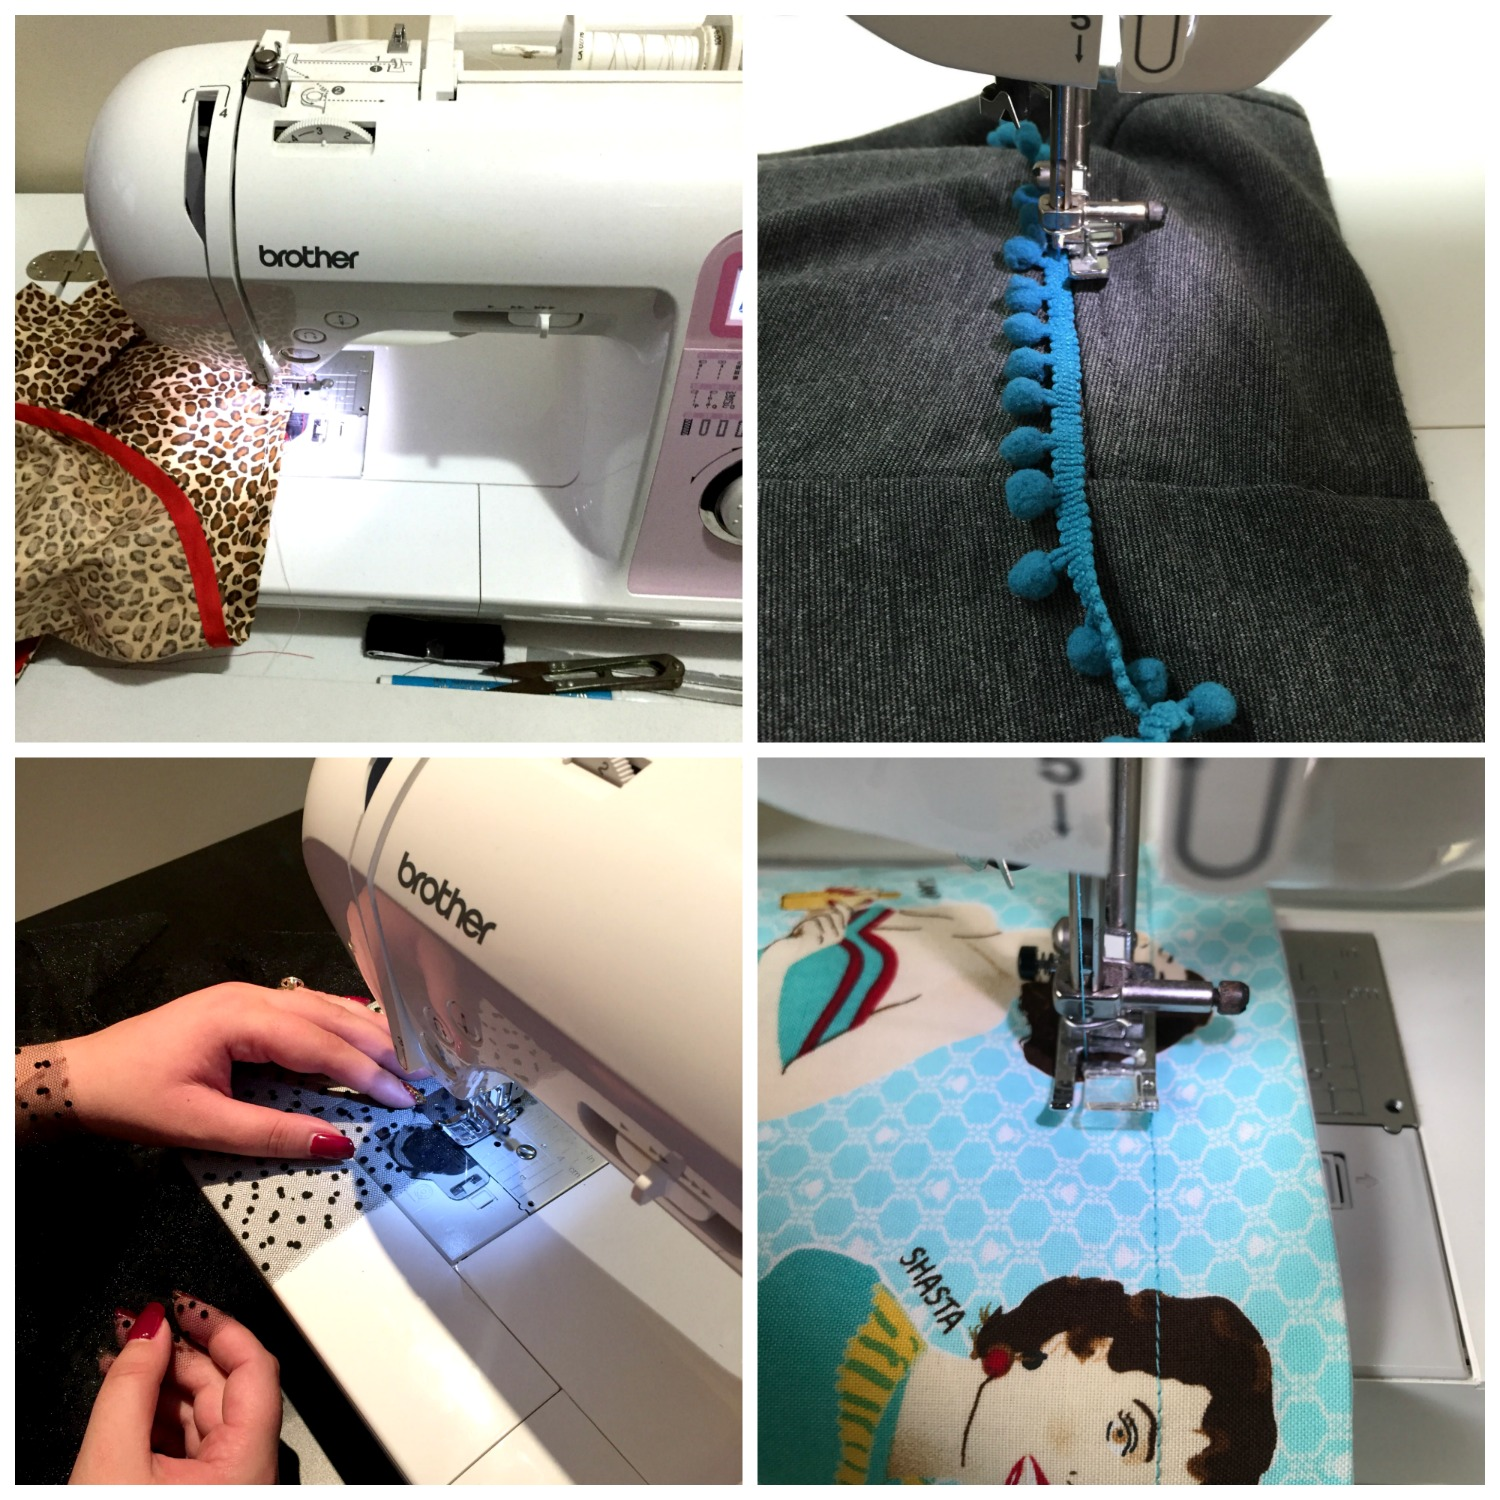 sew-sewing-in-the-new-world-stash-building-tales-from-an-aussie-sewing-room-sew